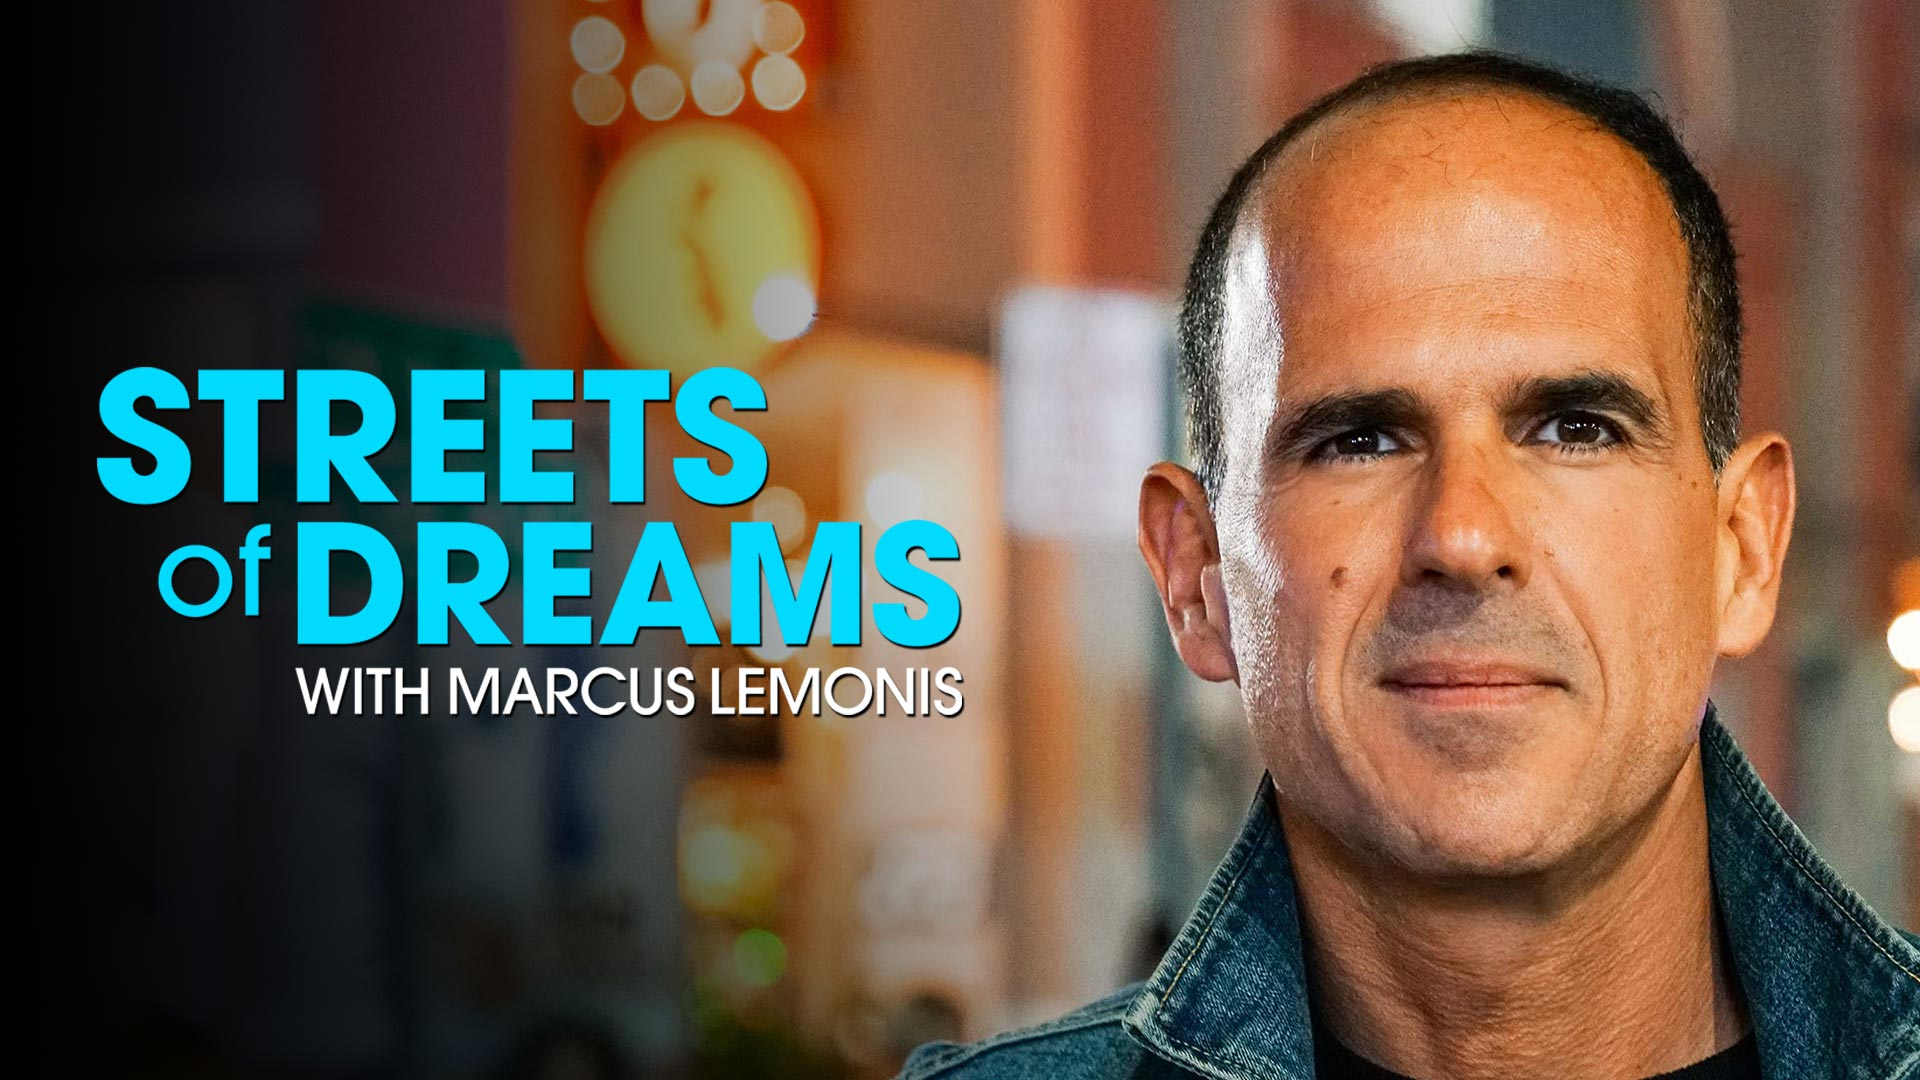 Streets of Dreams with Marcus Lemonis, Season 1